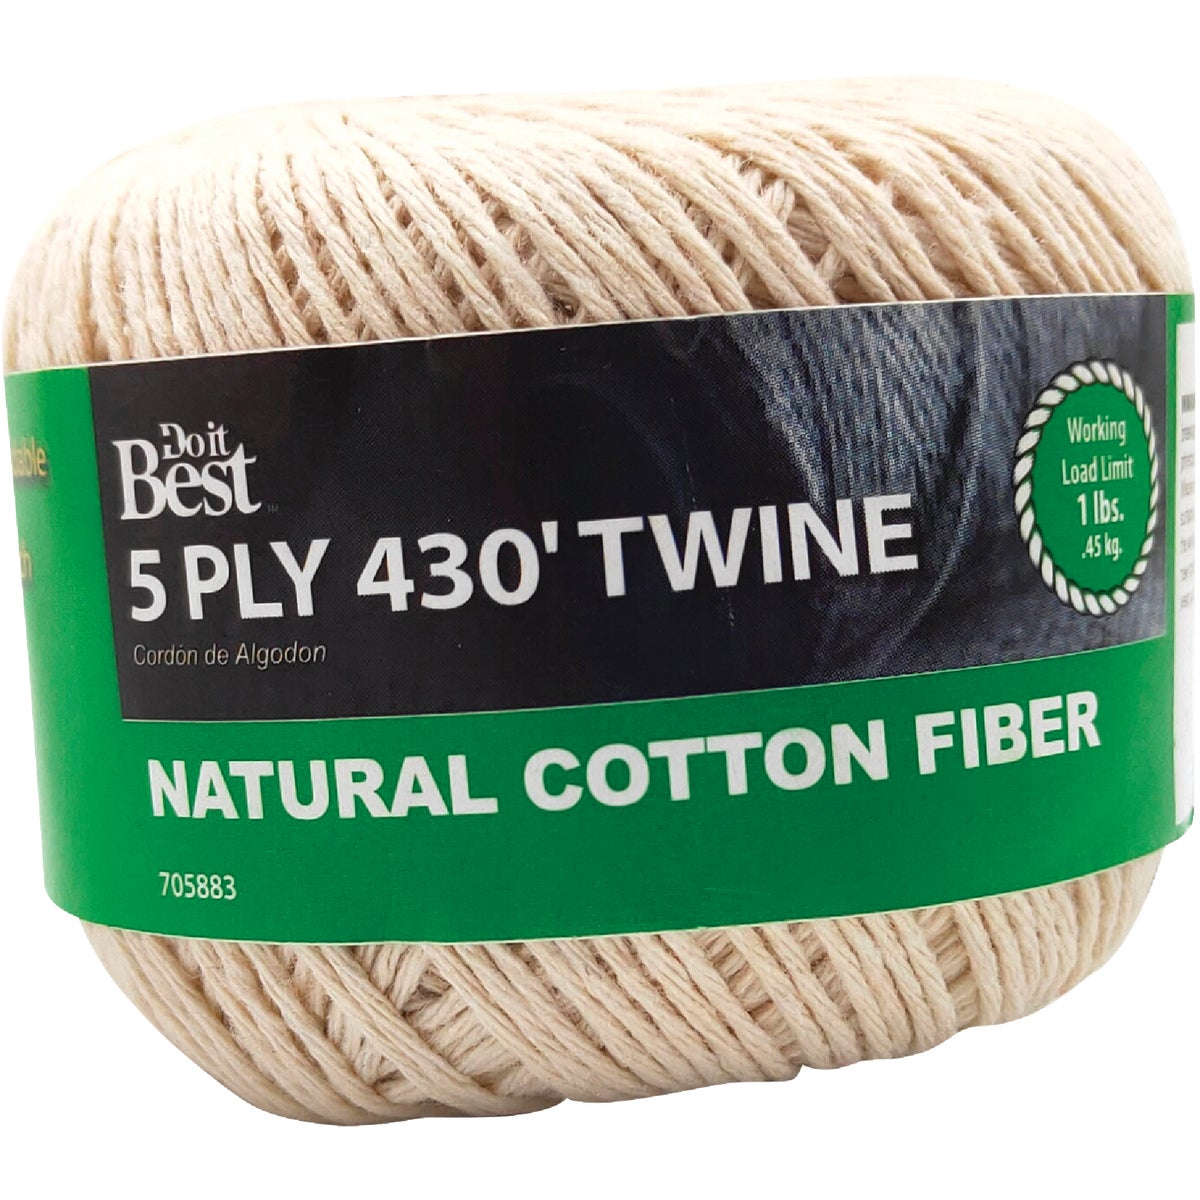 5PLY 430' COTTON TWINE - 705883 by Do it Best